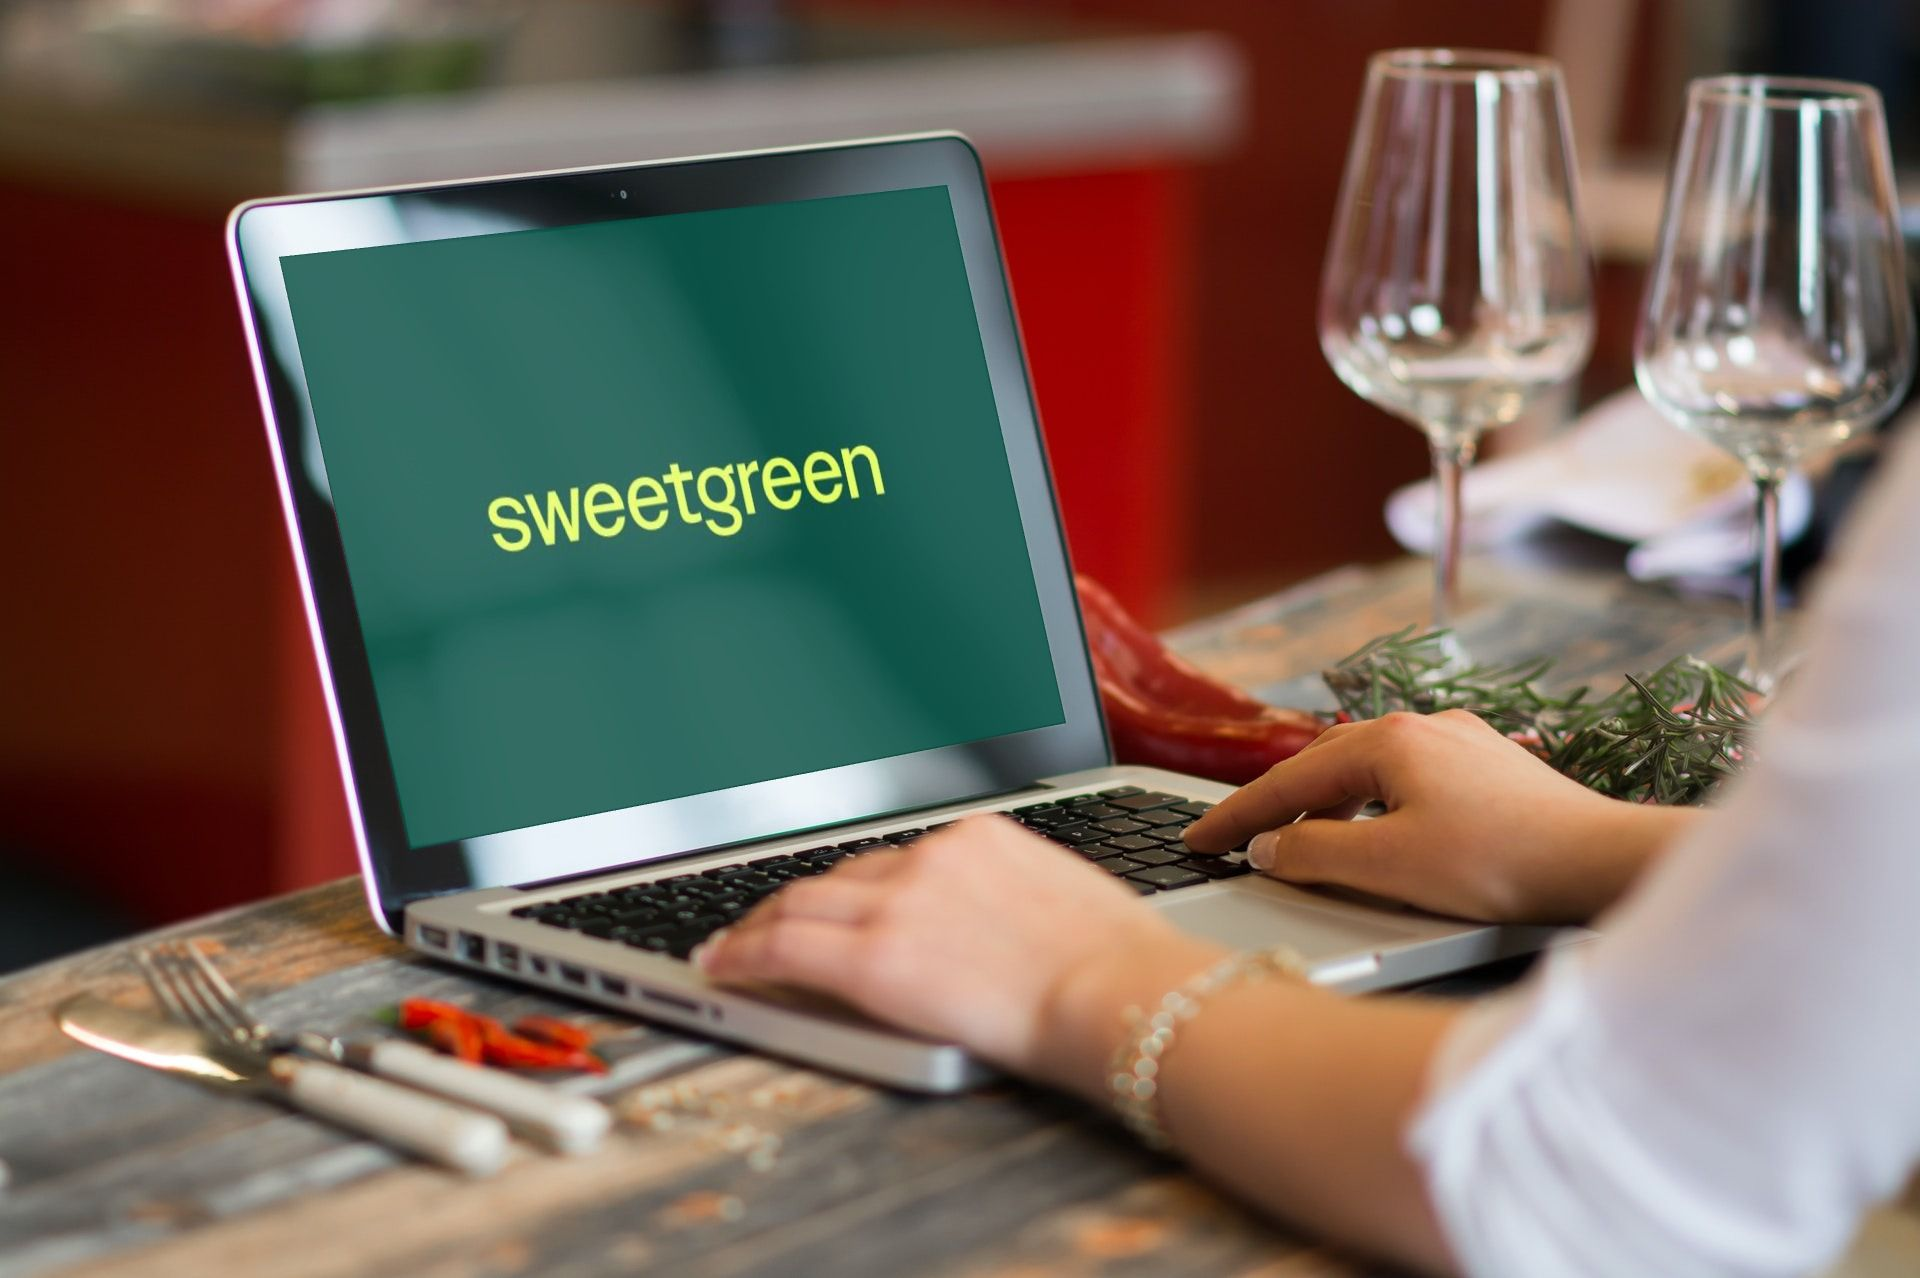 Sweetgreen Initial Public Offering